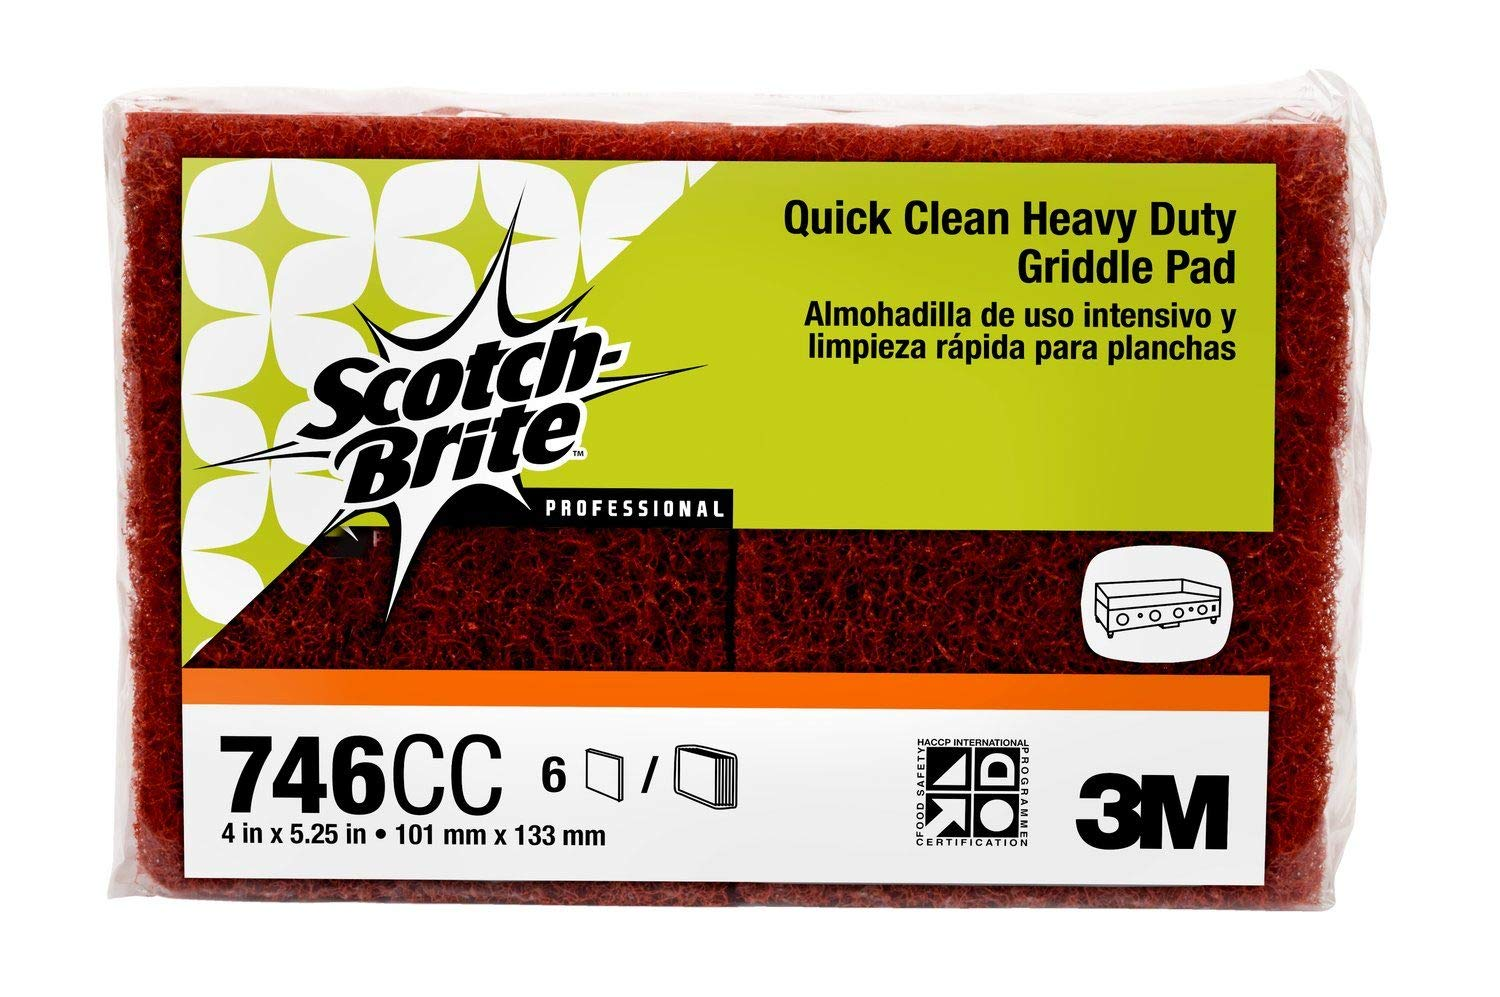 "Scotch-Brite 746 Quick Clean Heavy Duty Griddle Pad, 5-1/4"" Length x 4"" Width x 0.8"" Thick (Case of 15)"